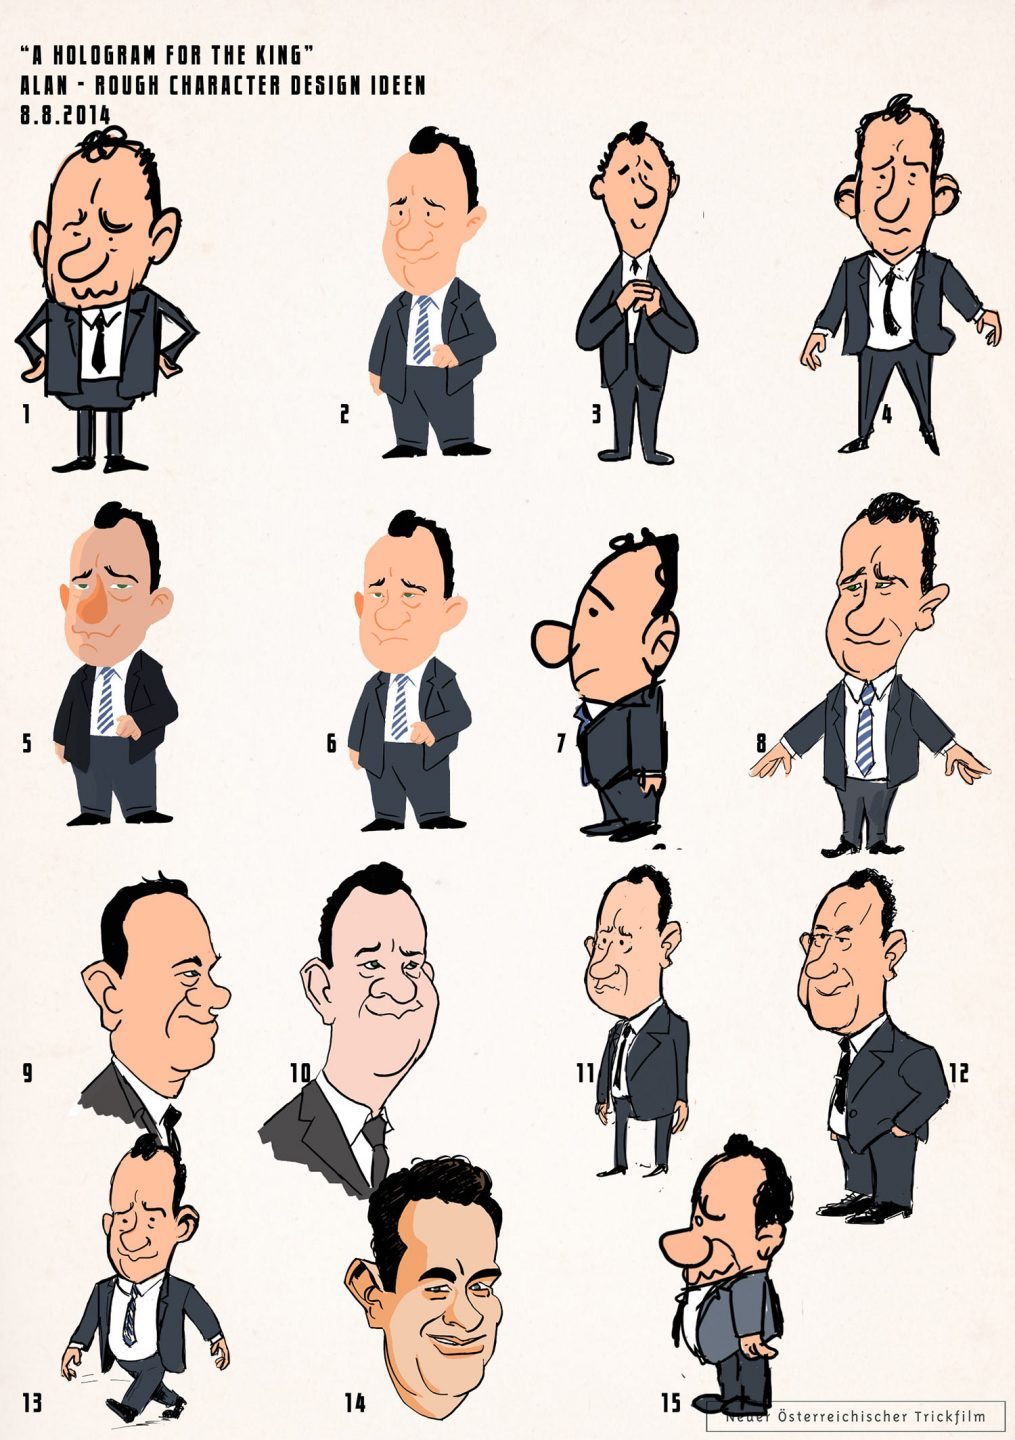 Tom Hanks character design by Benjamin Swiczinsky.